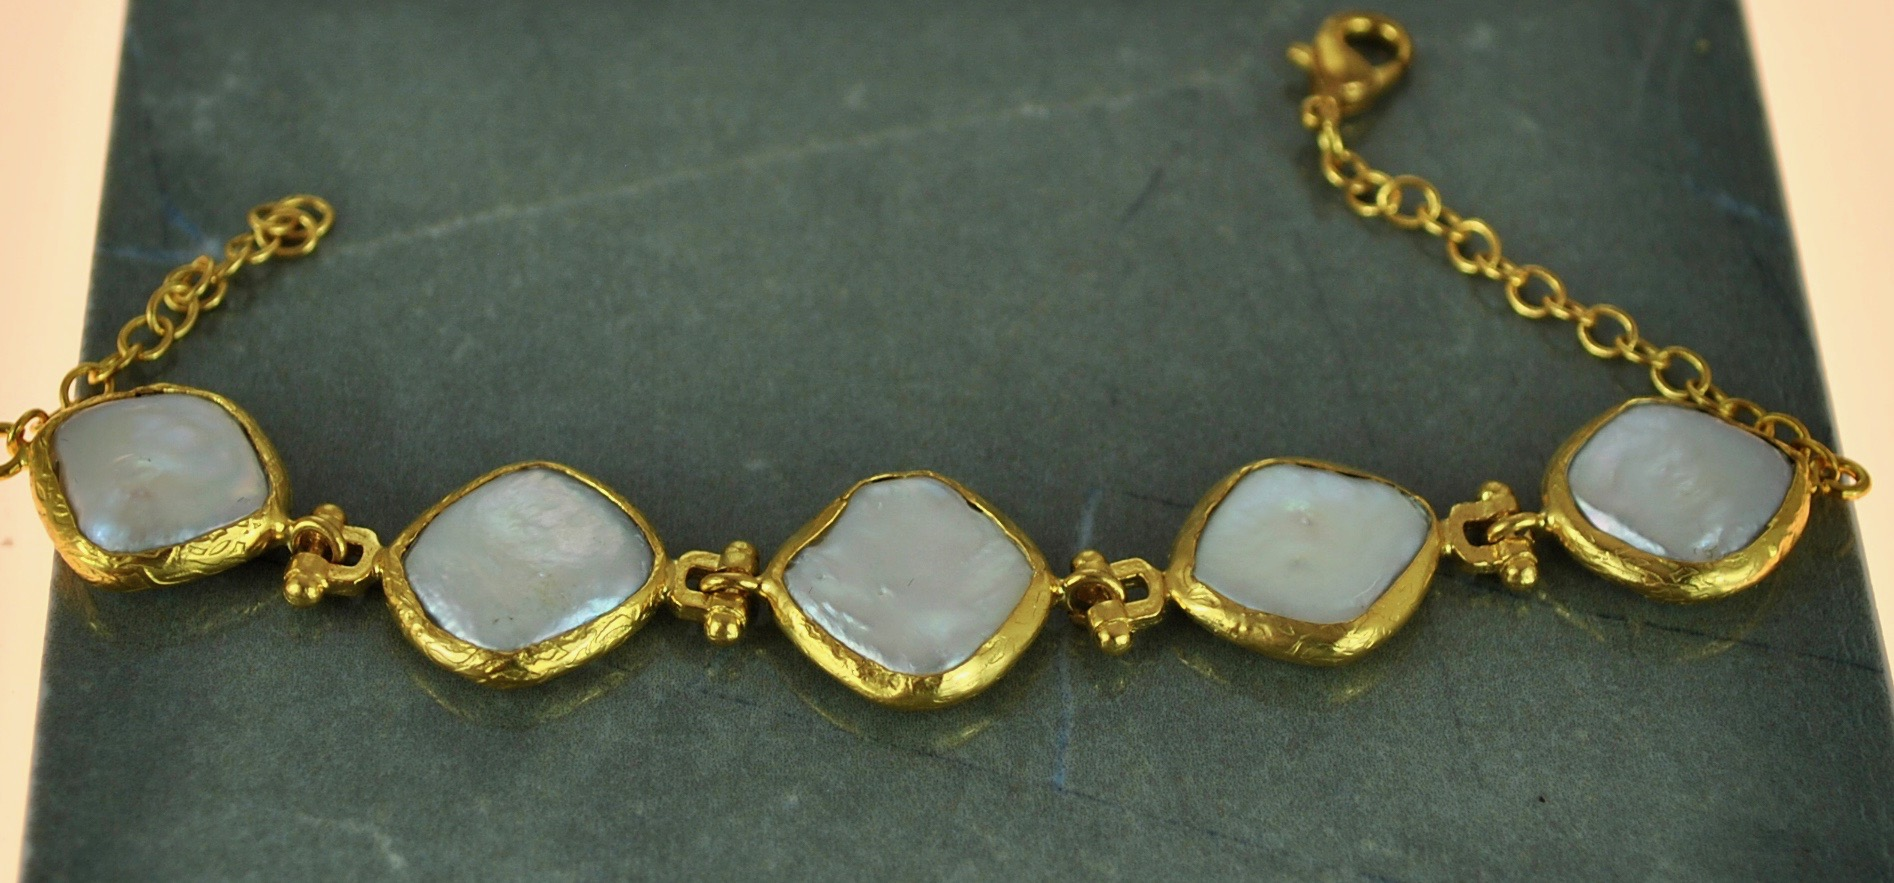 White Mother of pearl bracelet in 22k Gold vermeil